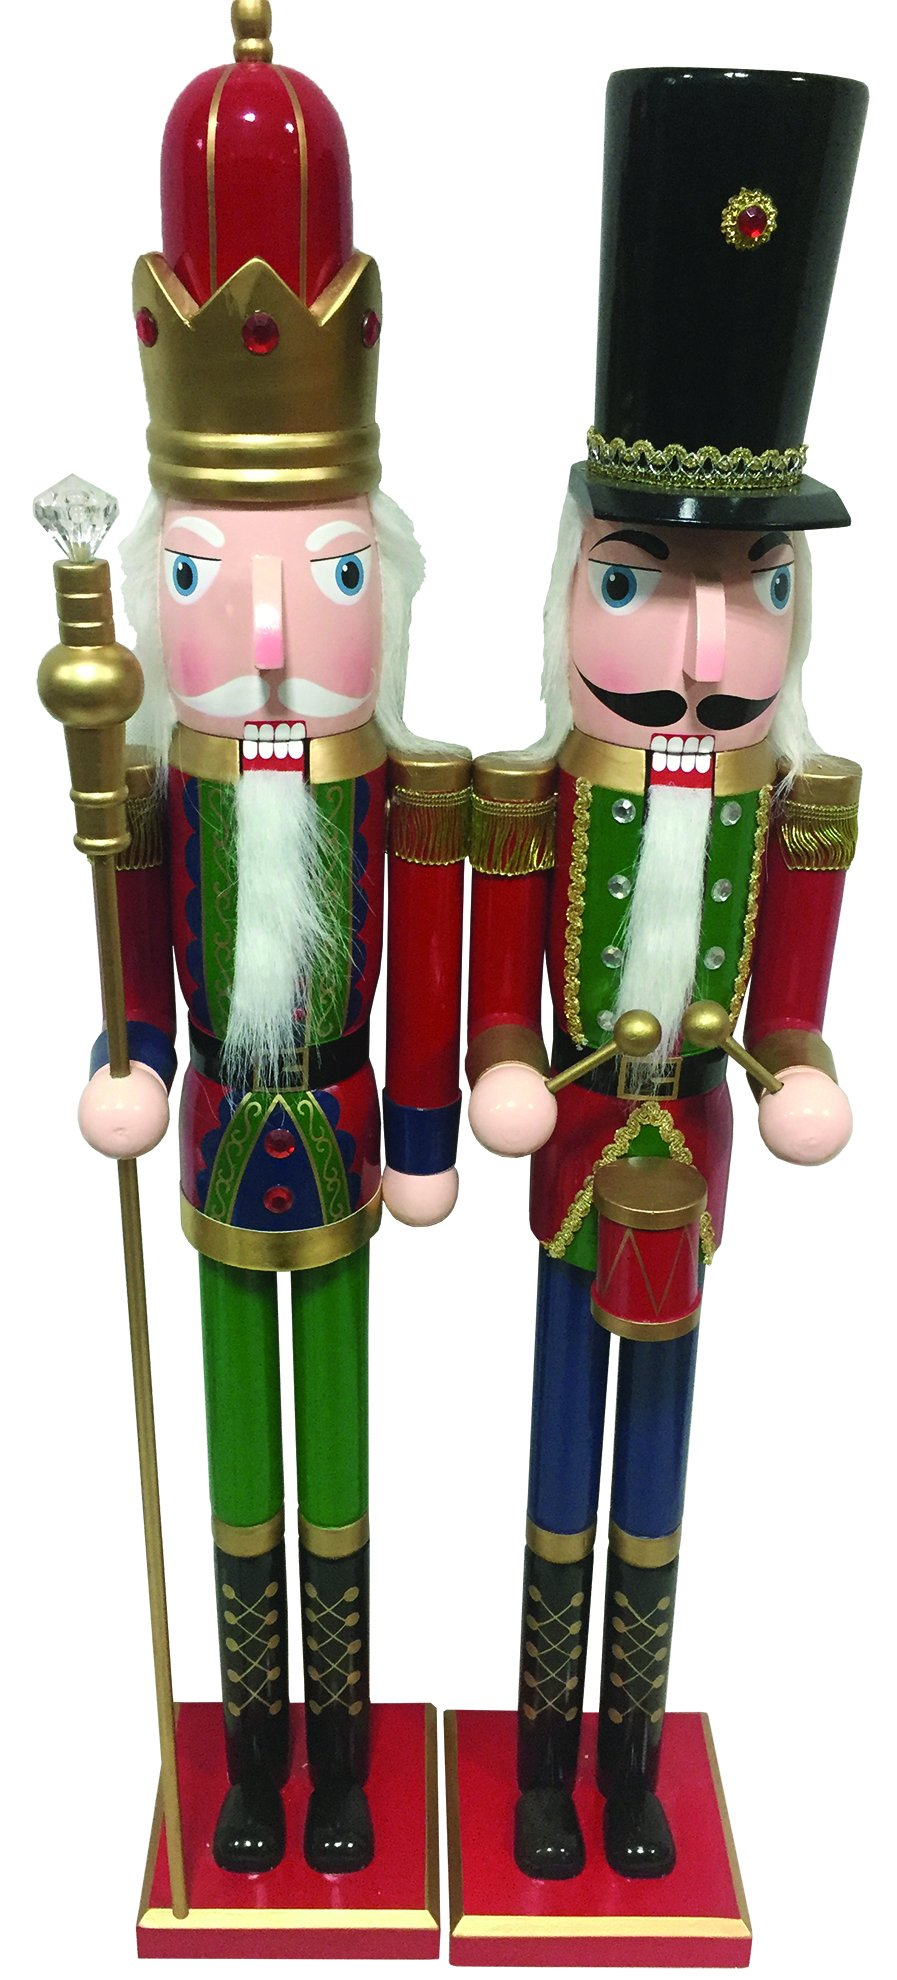 Santa's Workshop 70010 Royal King and Drummer Nutcrackers, Set of 2, 36'', Multicolored, 2 Piece